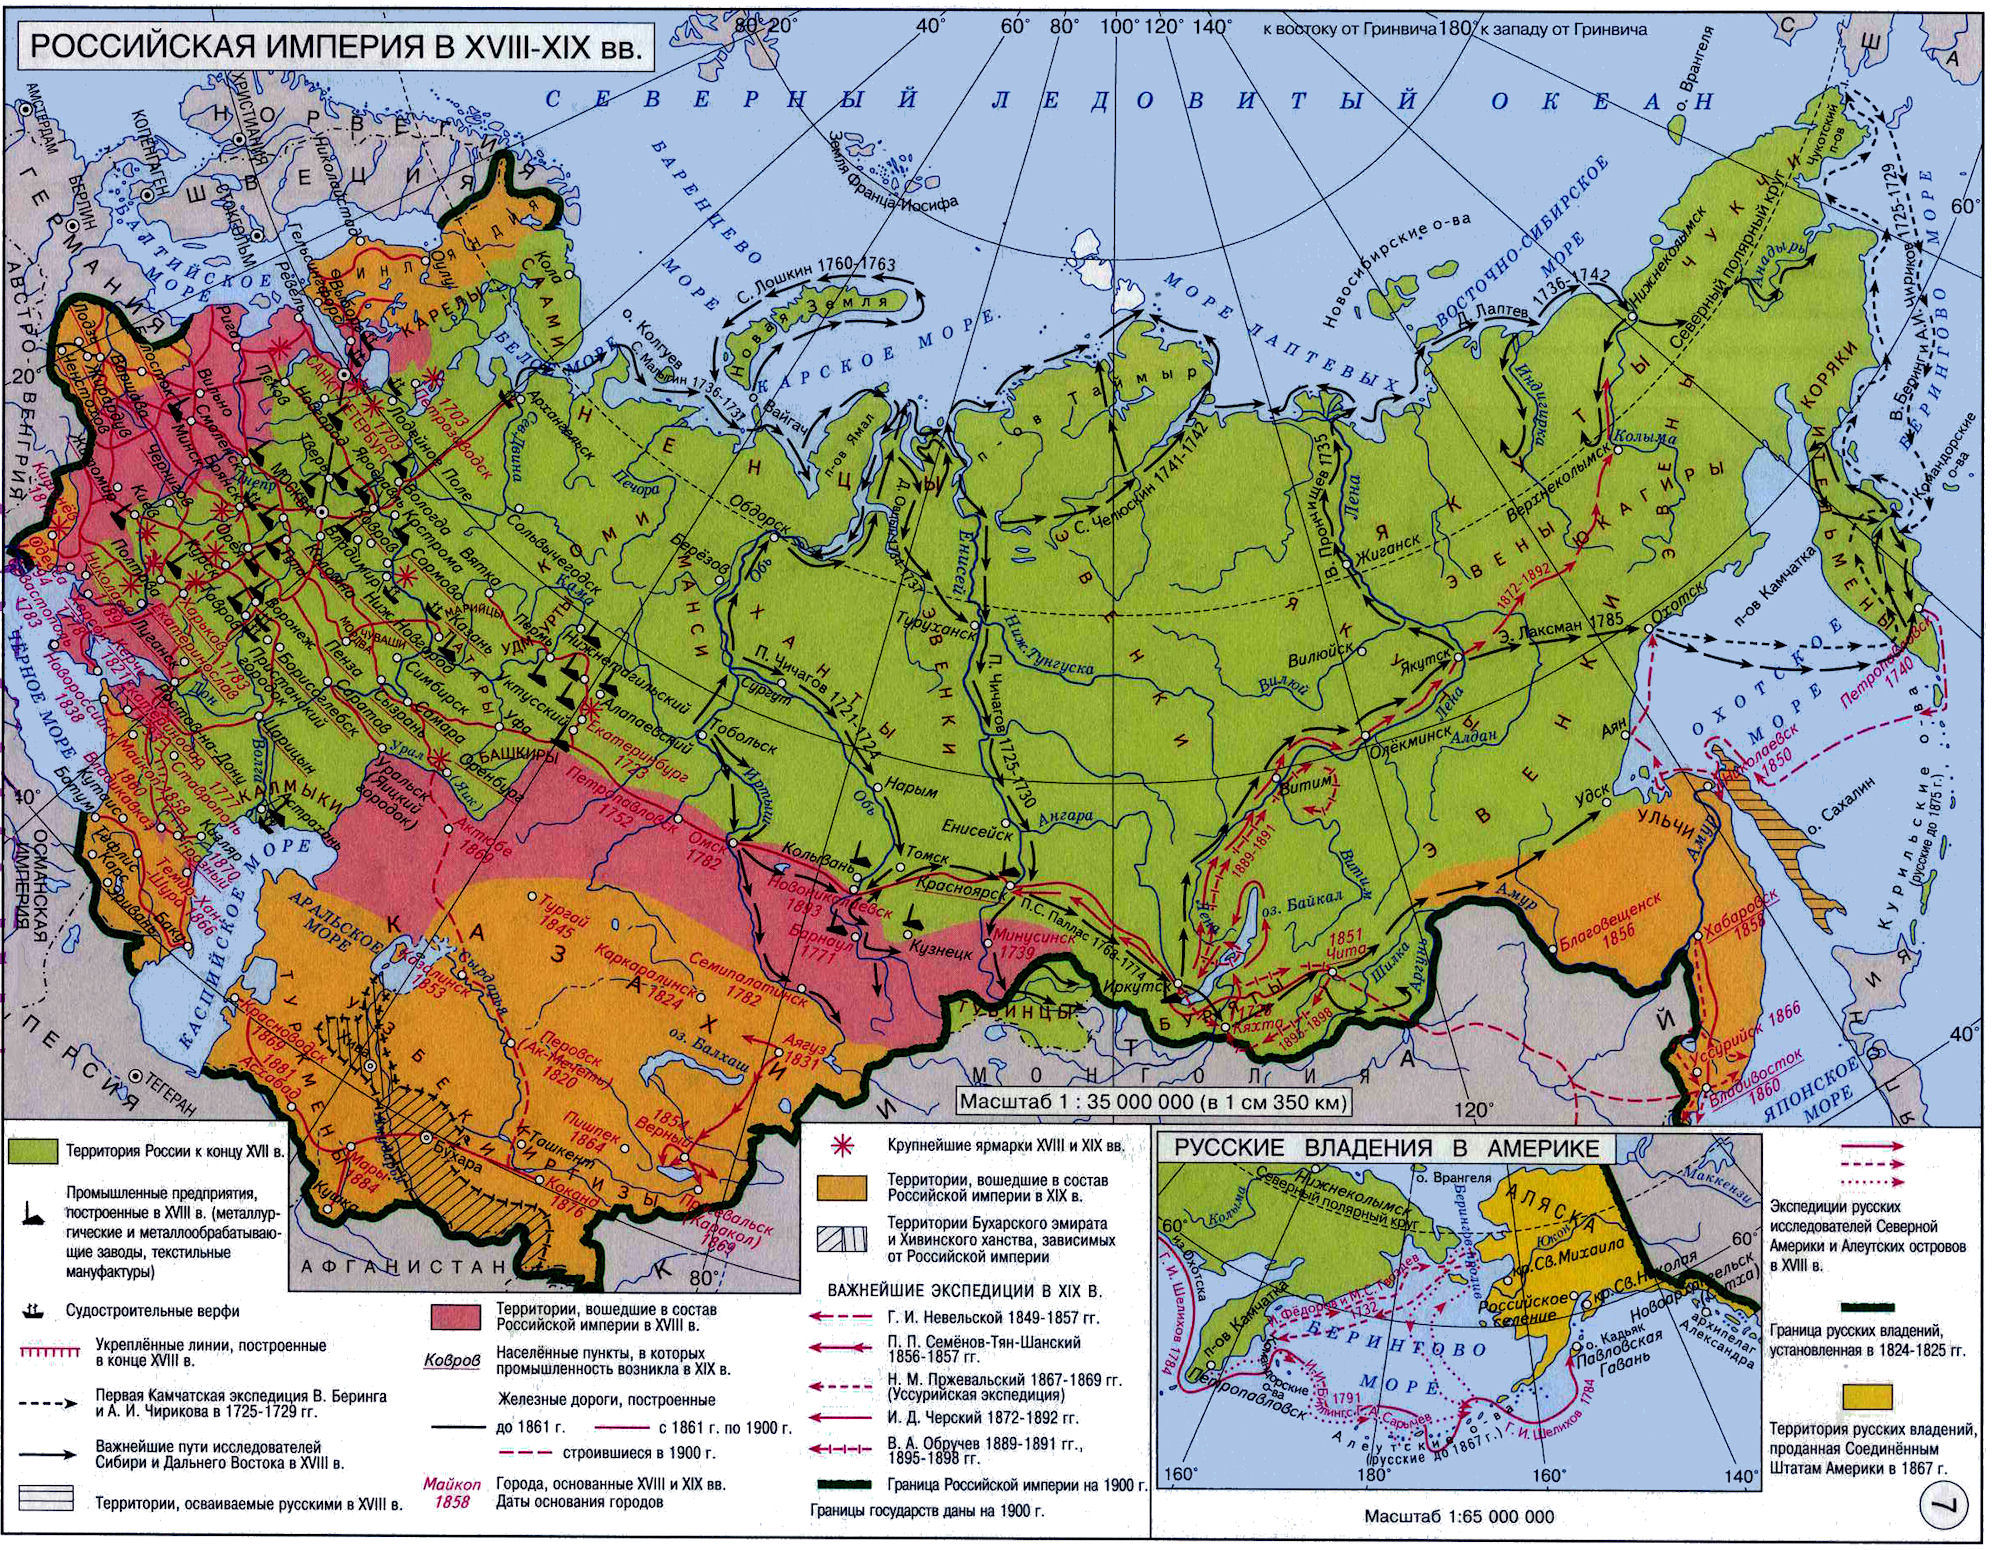 a history of russia History of russia including vladimir's descendants, the decline of kiev, independent novgorod, vladimir as capital, the golden horde, princes of moscow, ivan iii, the third rome.